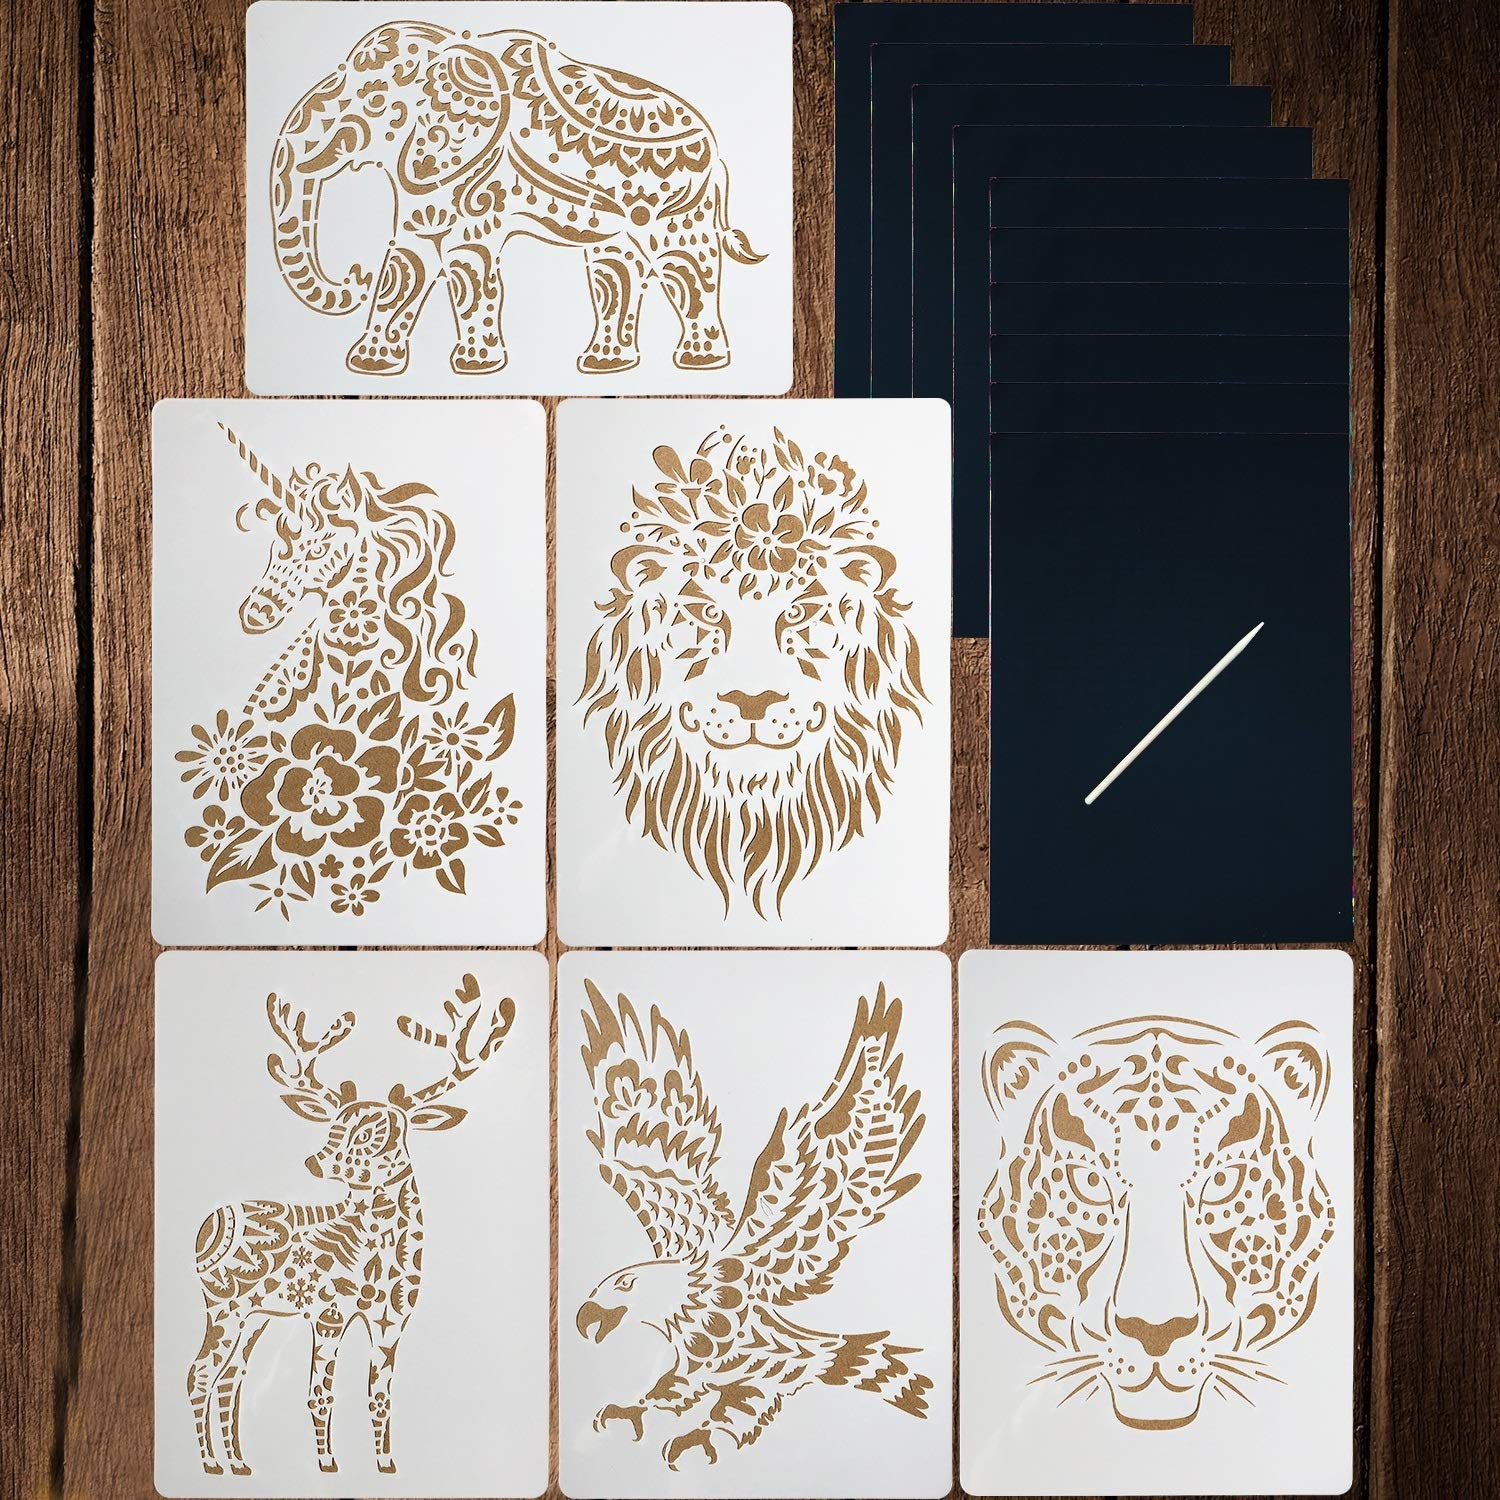 6 Pieces Animal Stencils Kids Craft Stencil Plastic Reusable Painting Stencils for DIY Kids Art Craft Project with 10 Sheets Rainbow Scratch Paper